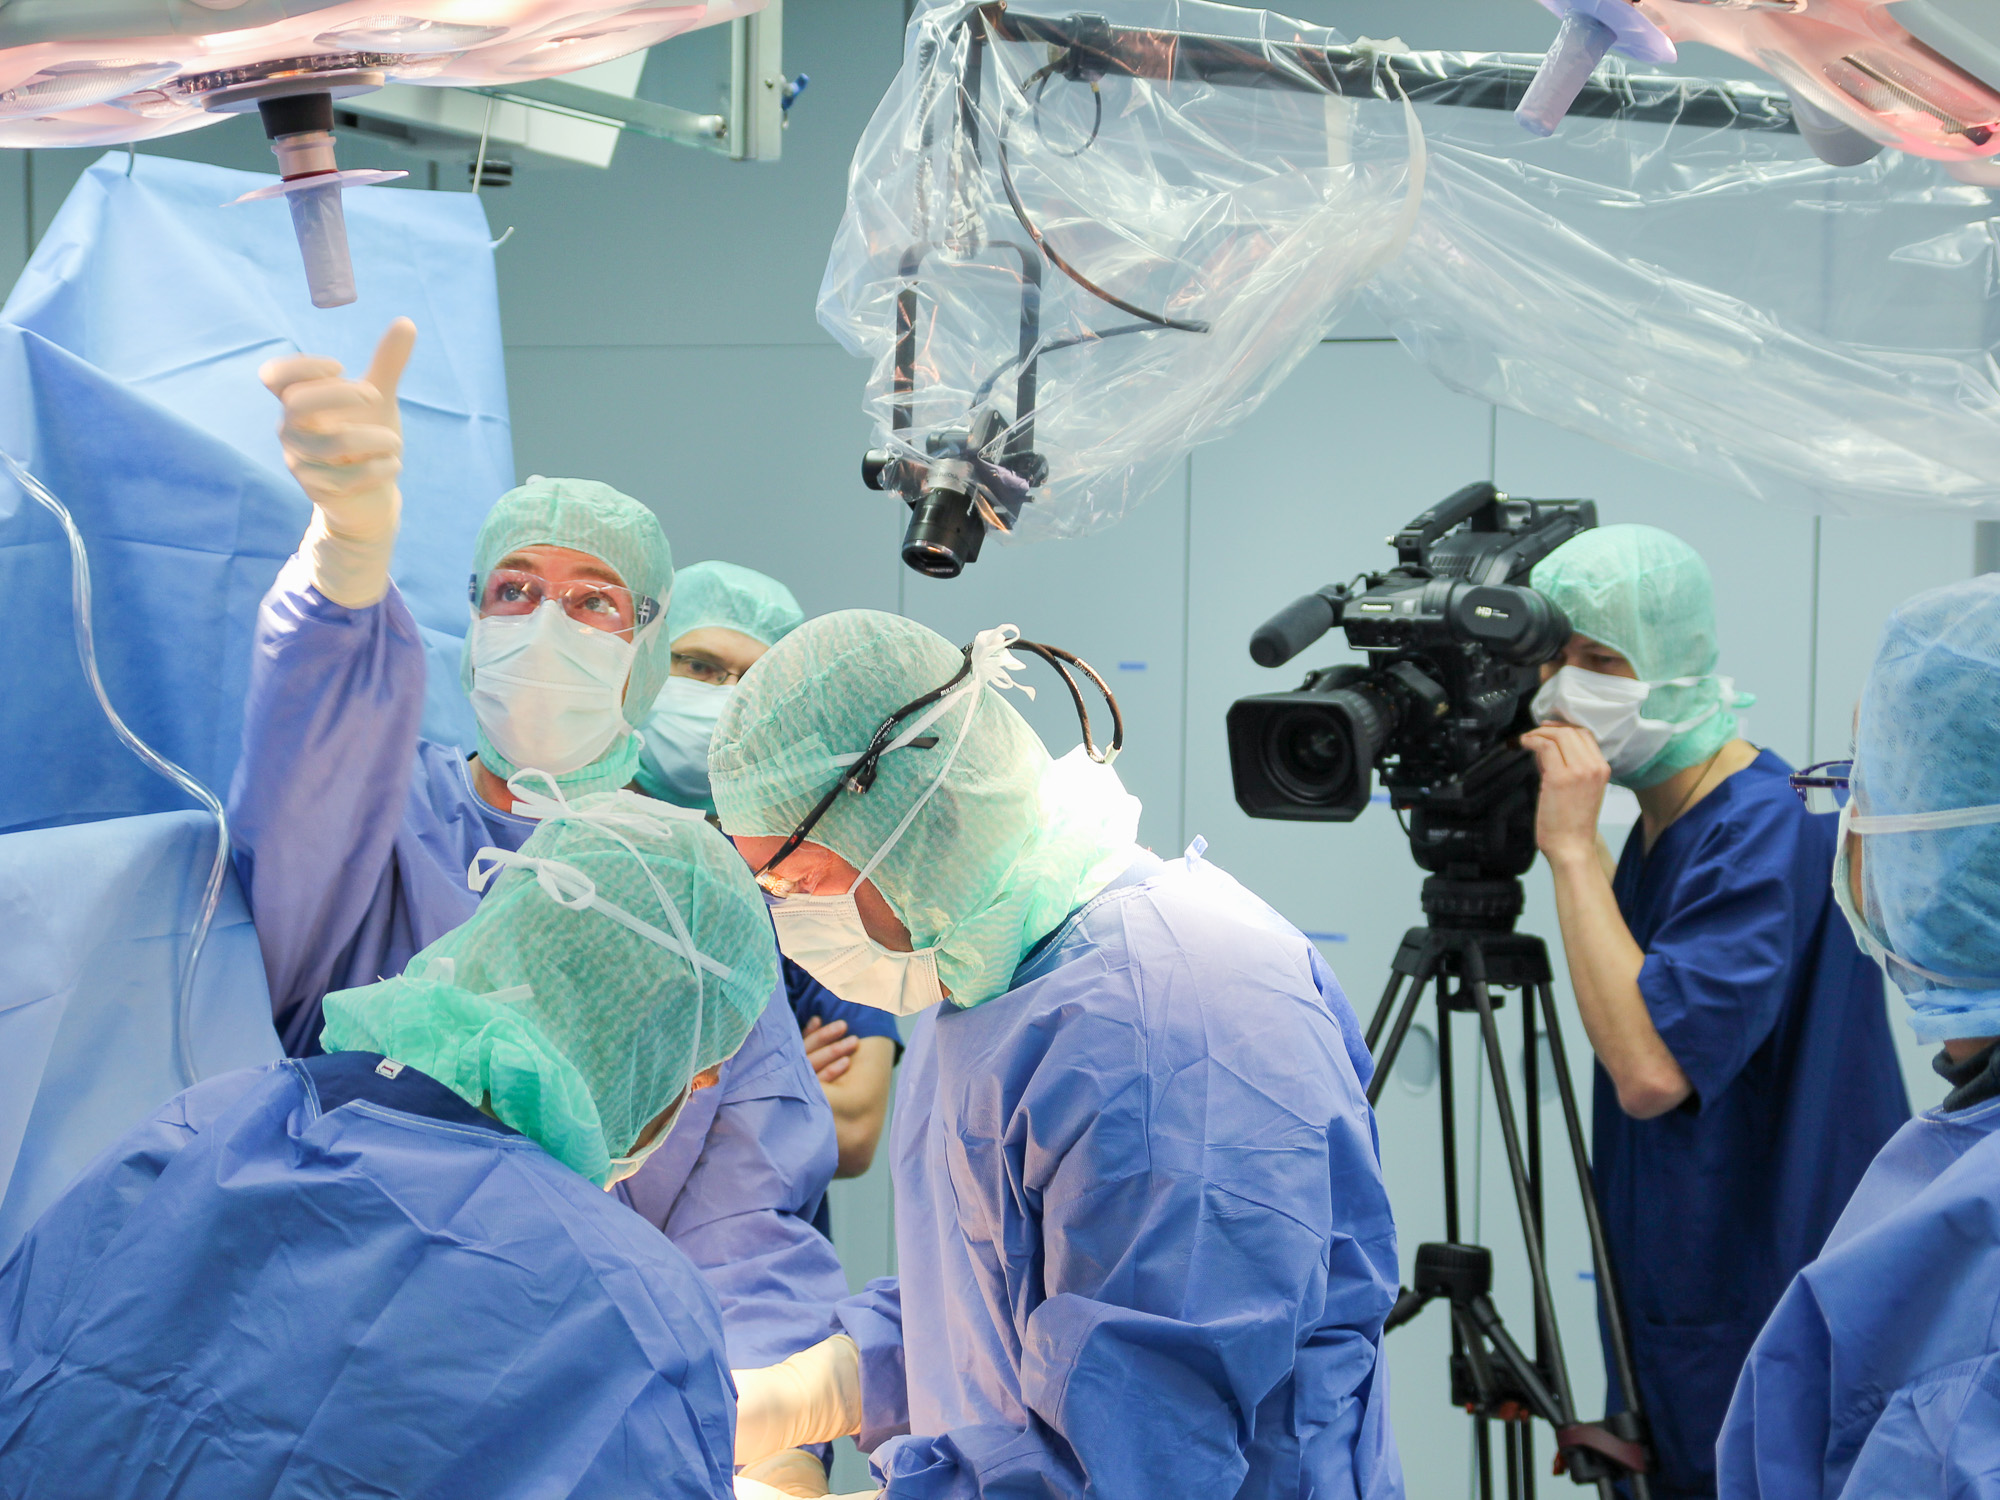 Medical Polecam im Operationssaal